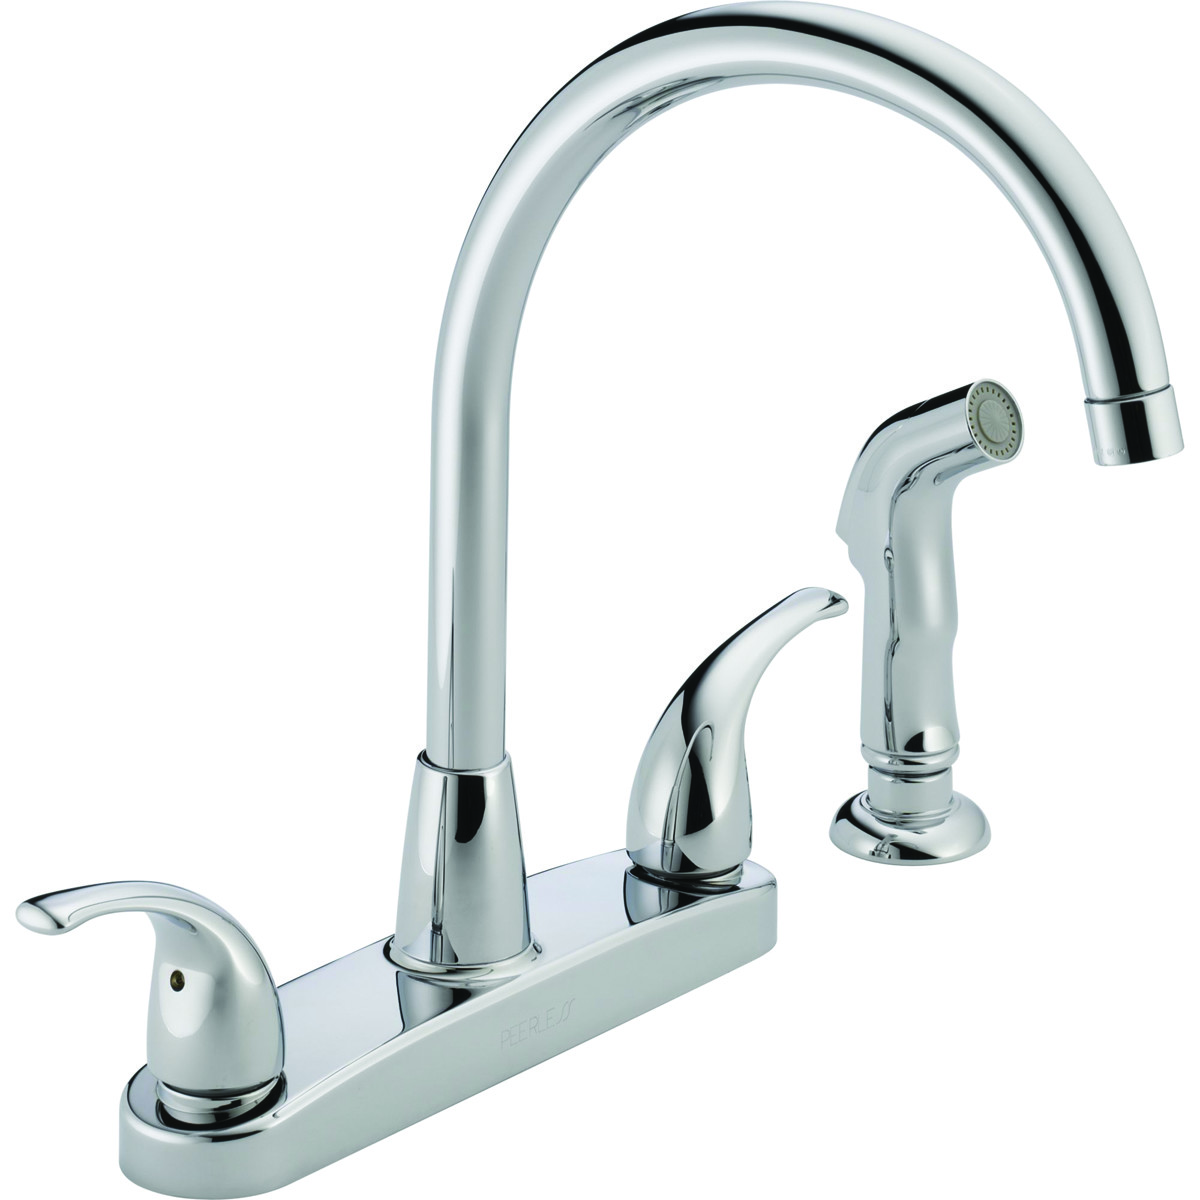 Delta Faucet P299578LF Peerless Kitchen Faucet 2 Lever Handle Hi Arc Swivel Spout With Side Spray Chrome (034449652216) [1]  sc 1 st  HardwareAndTools.com : peerless kitchen faucets - hauntedcathouse.org